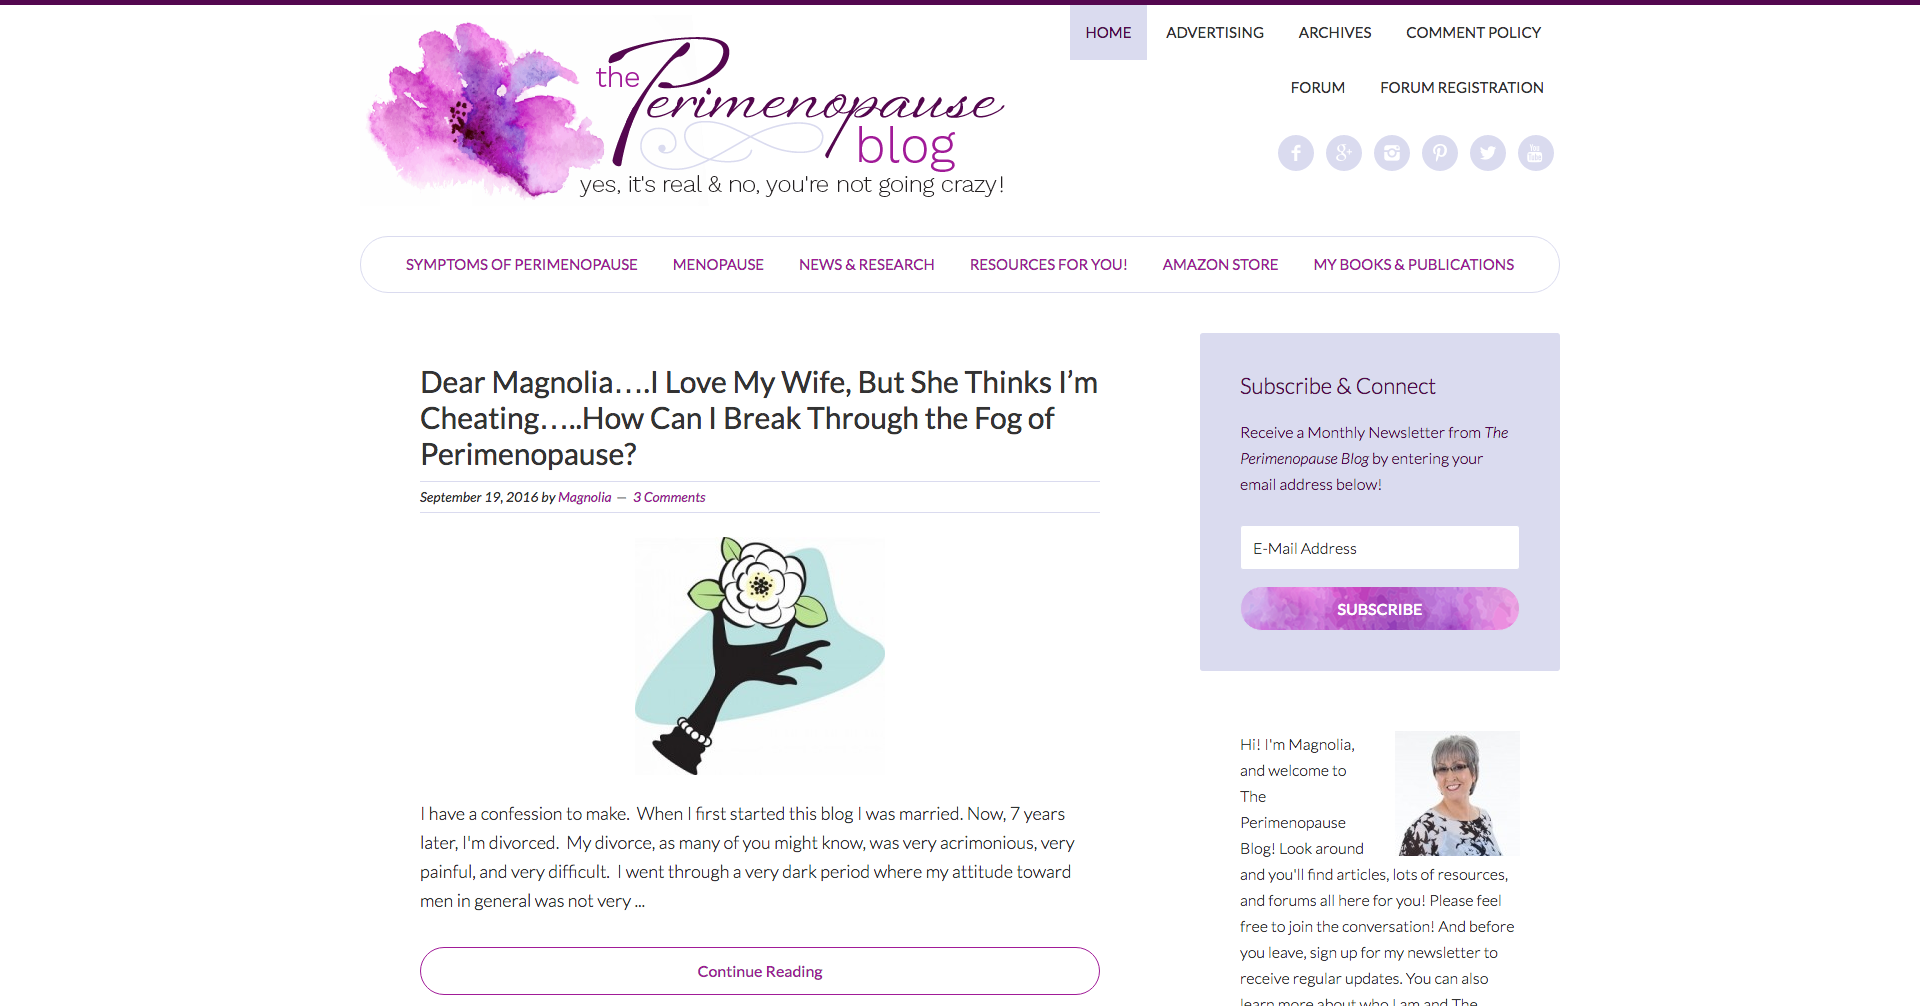 The Perimenopause Blog